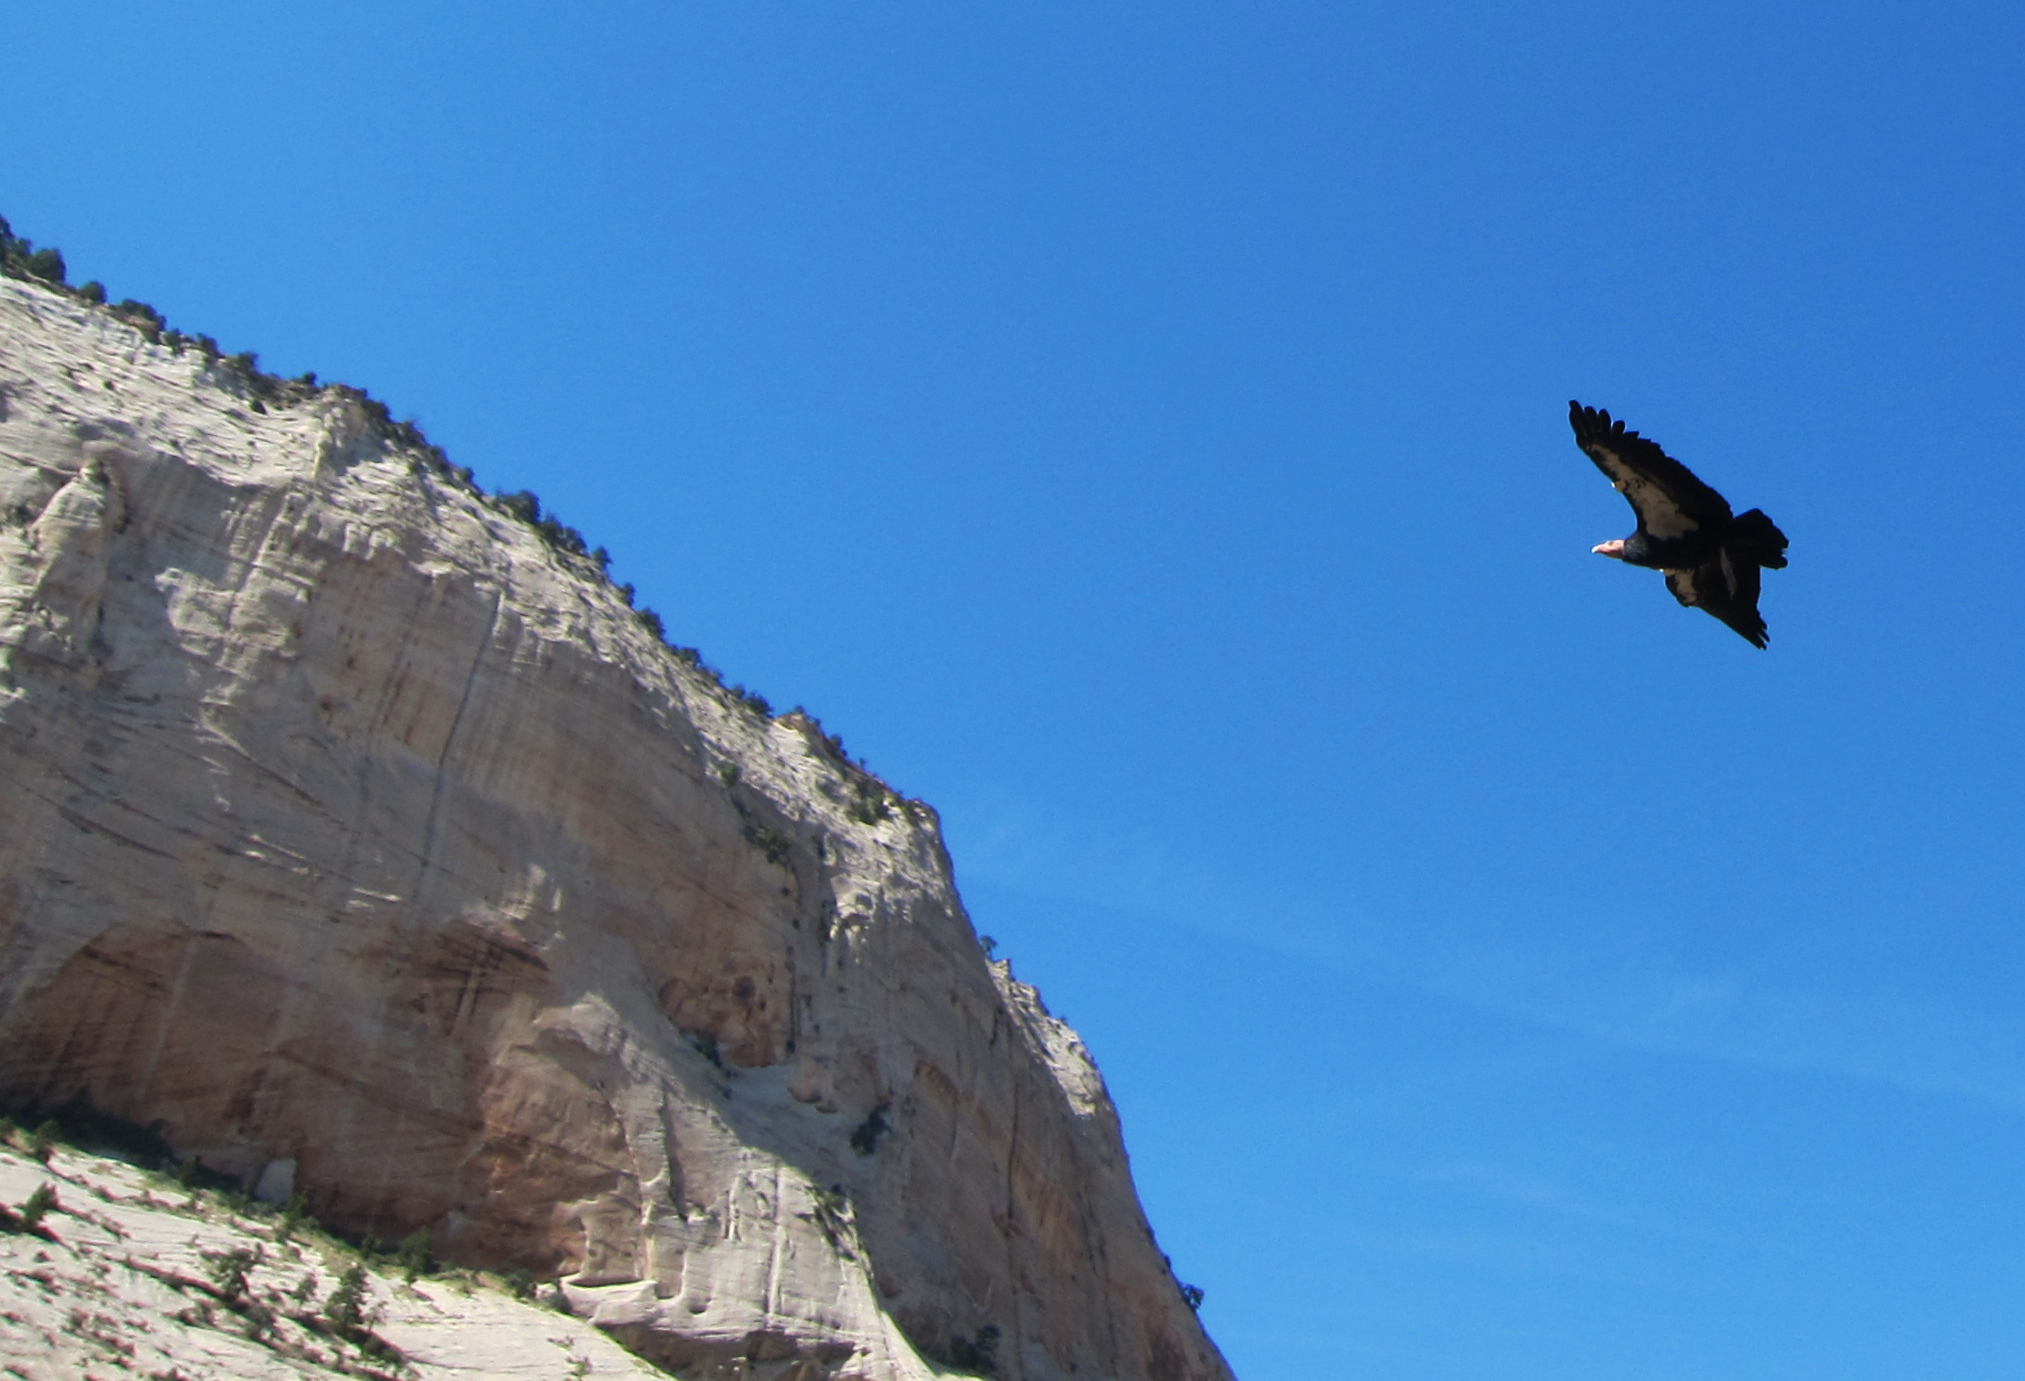 California condor soaring over Angels Landing Zion